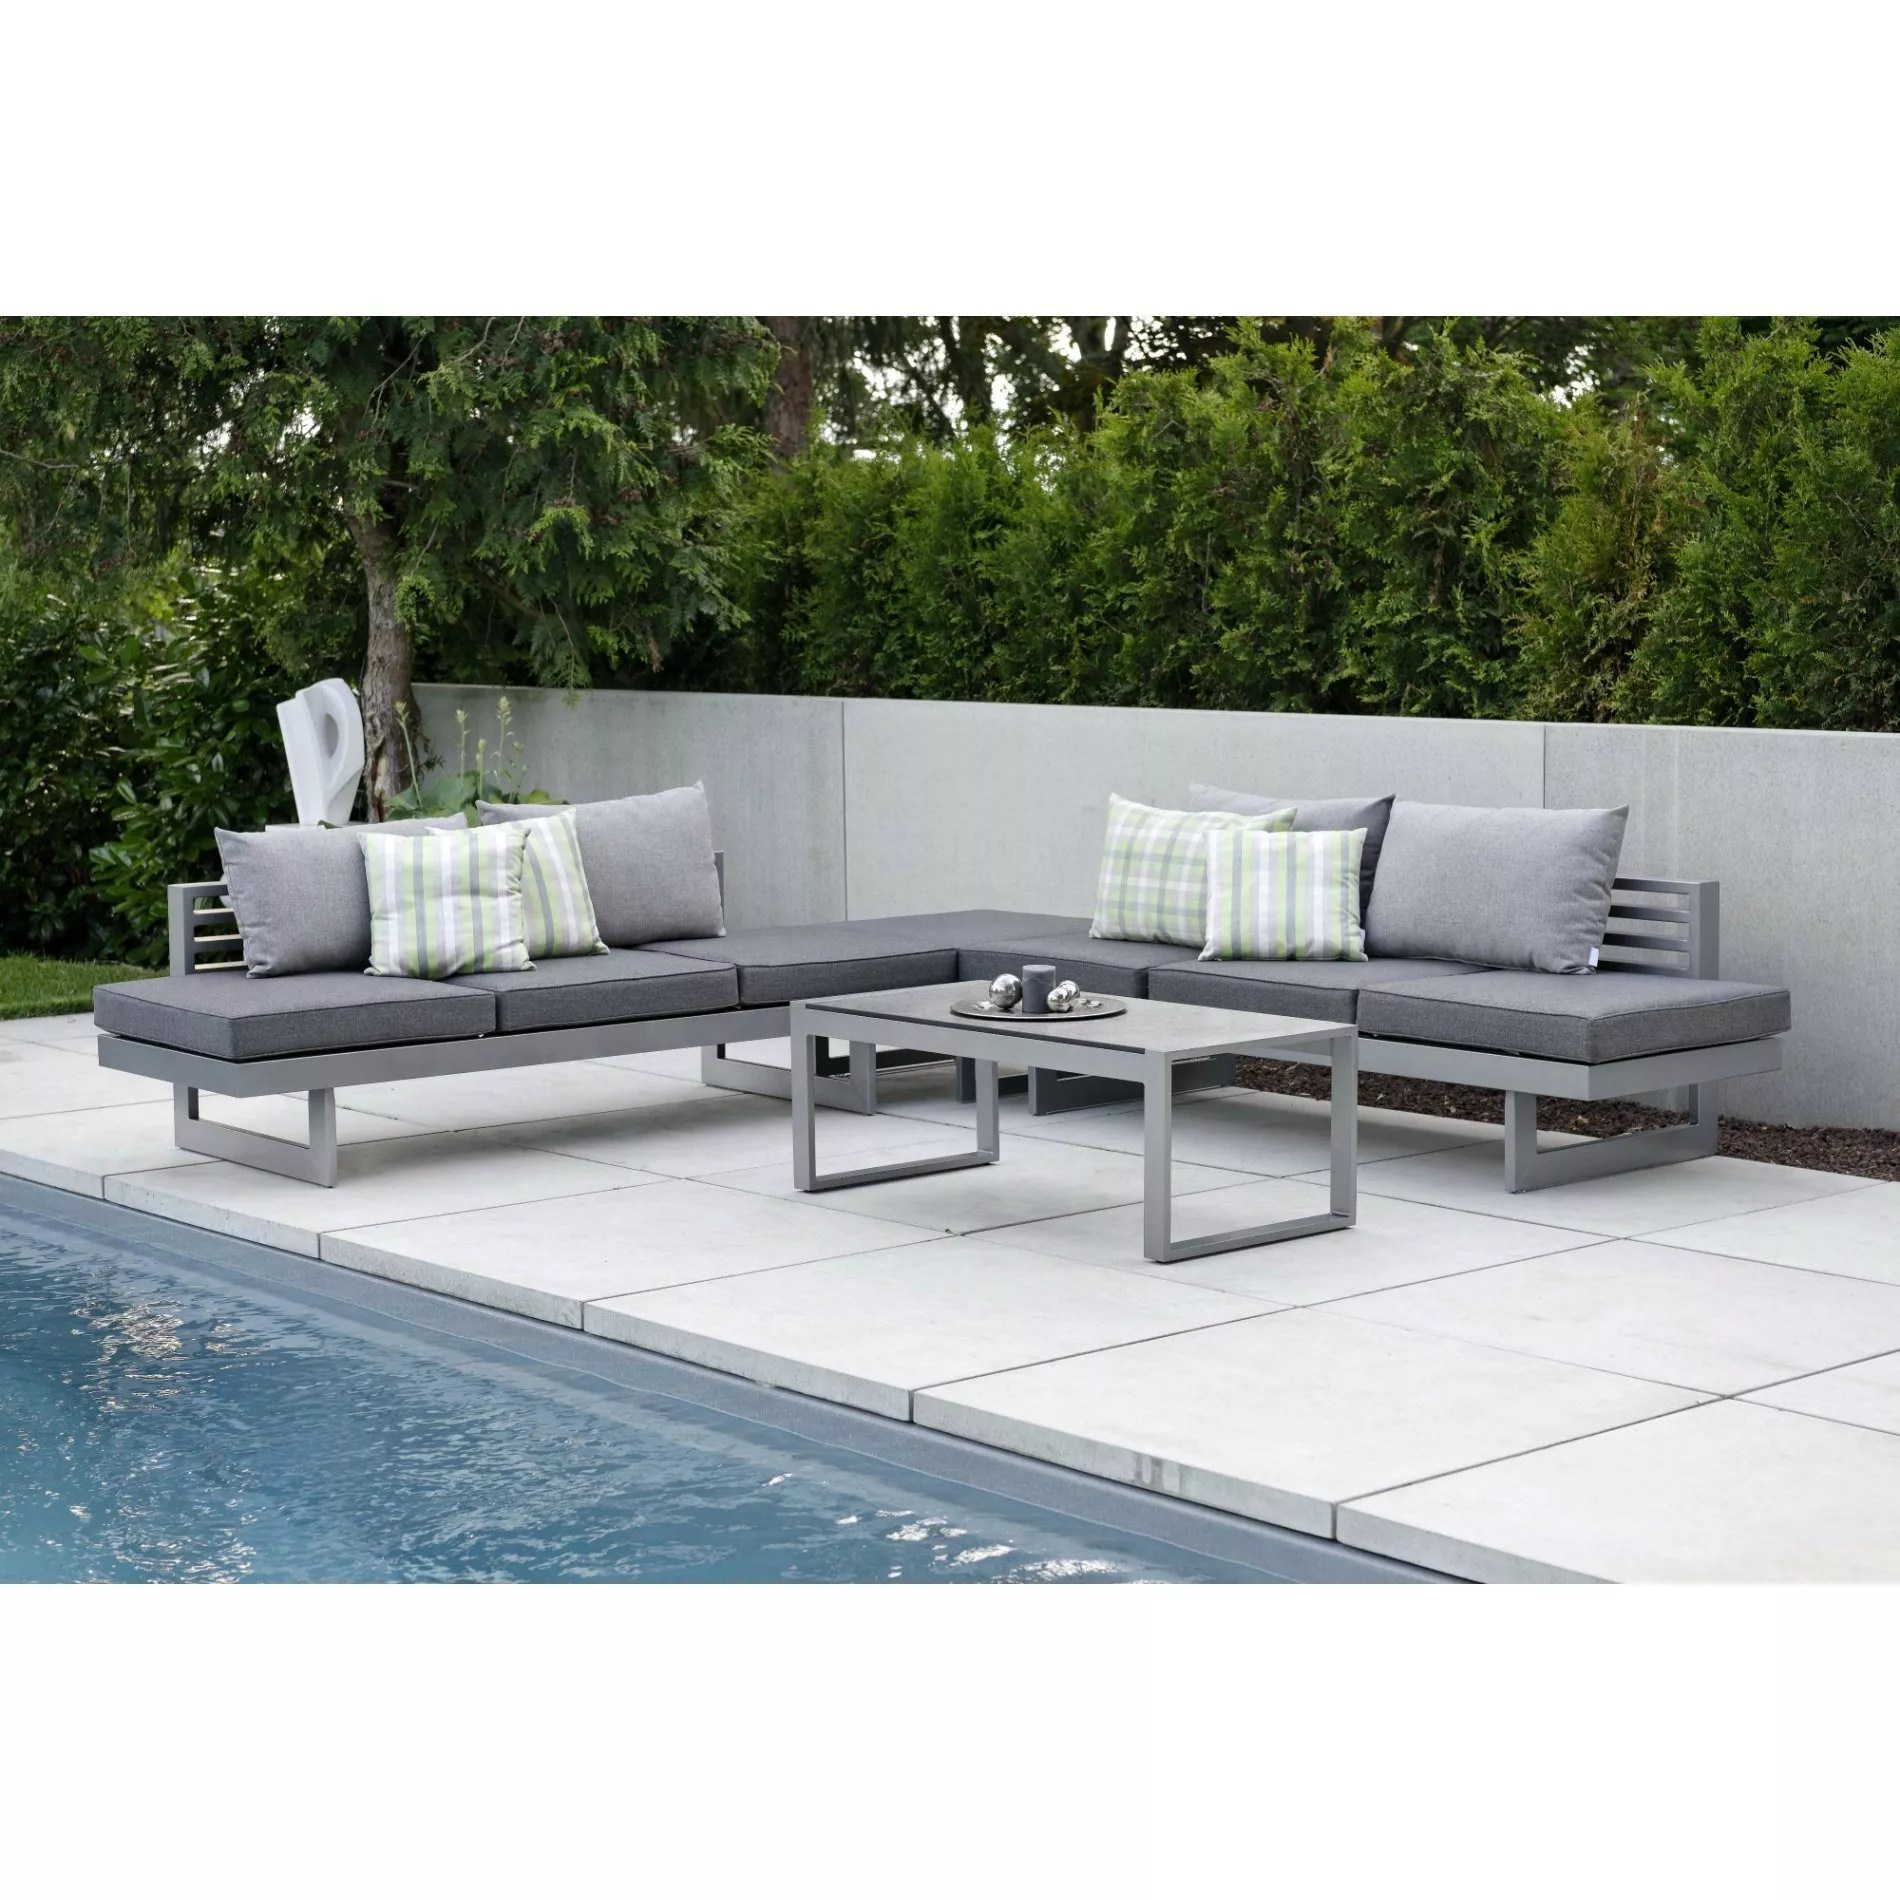 Liege Lounge Stern Loungesofa And Sonnenliege Quotholly Quot